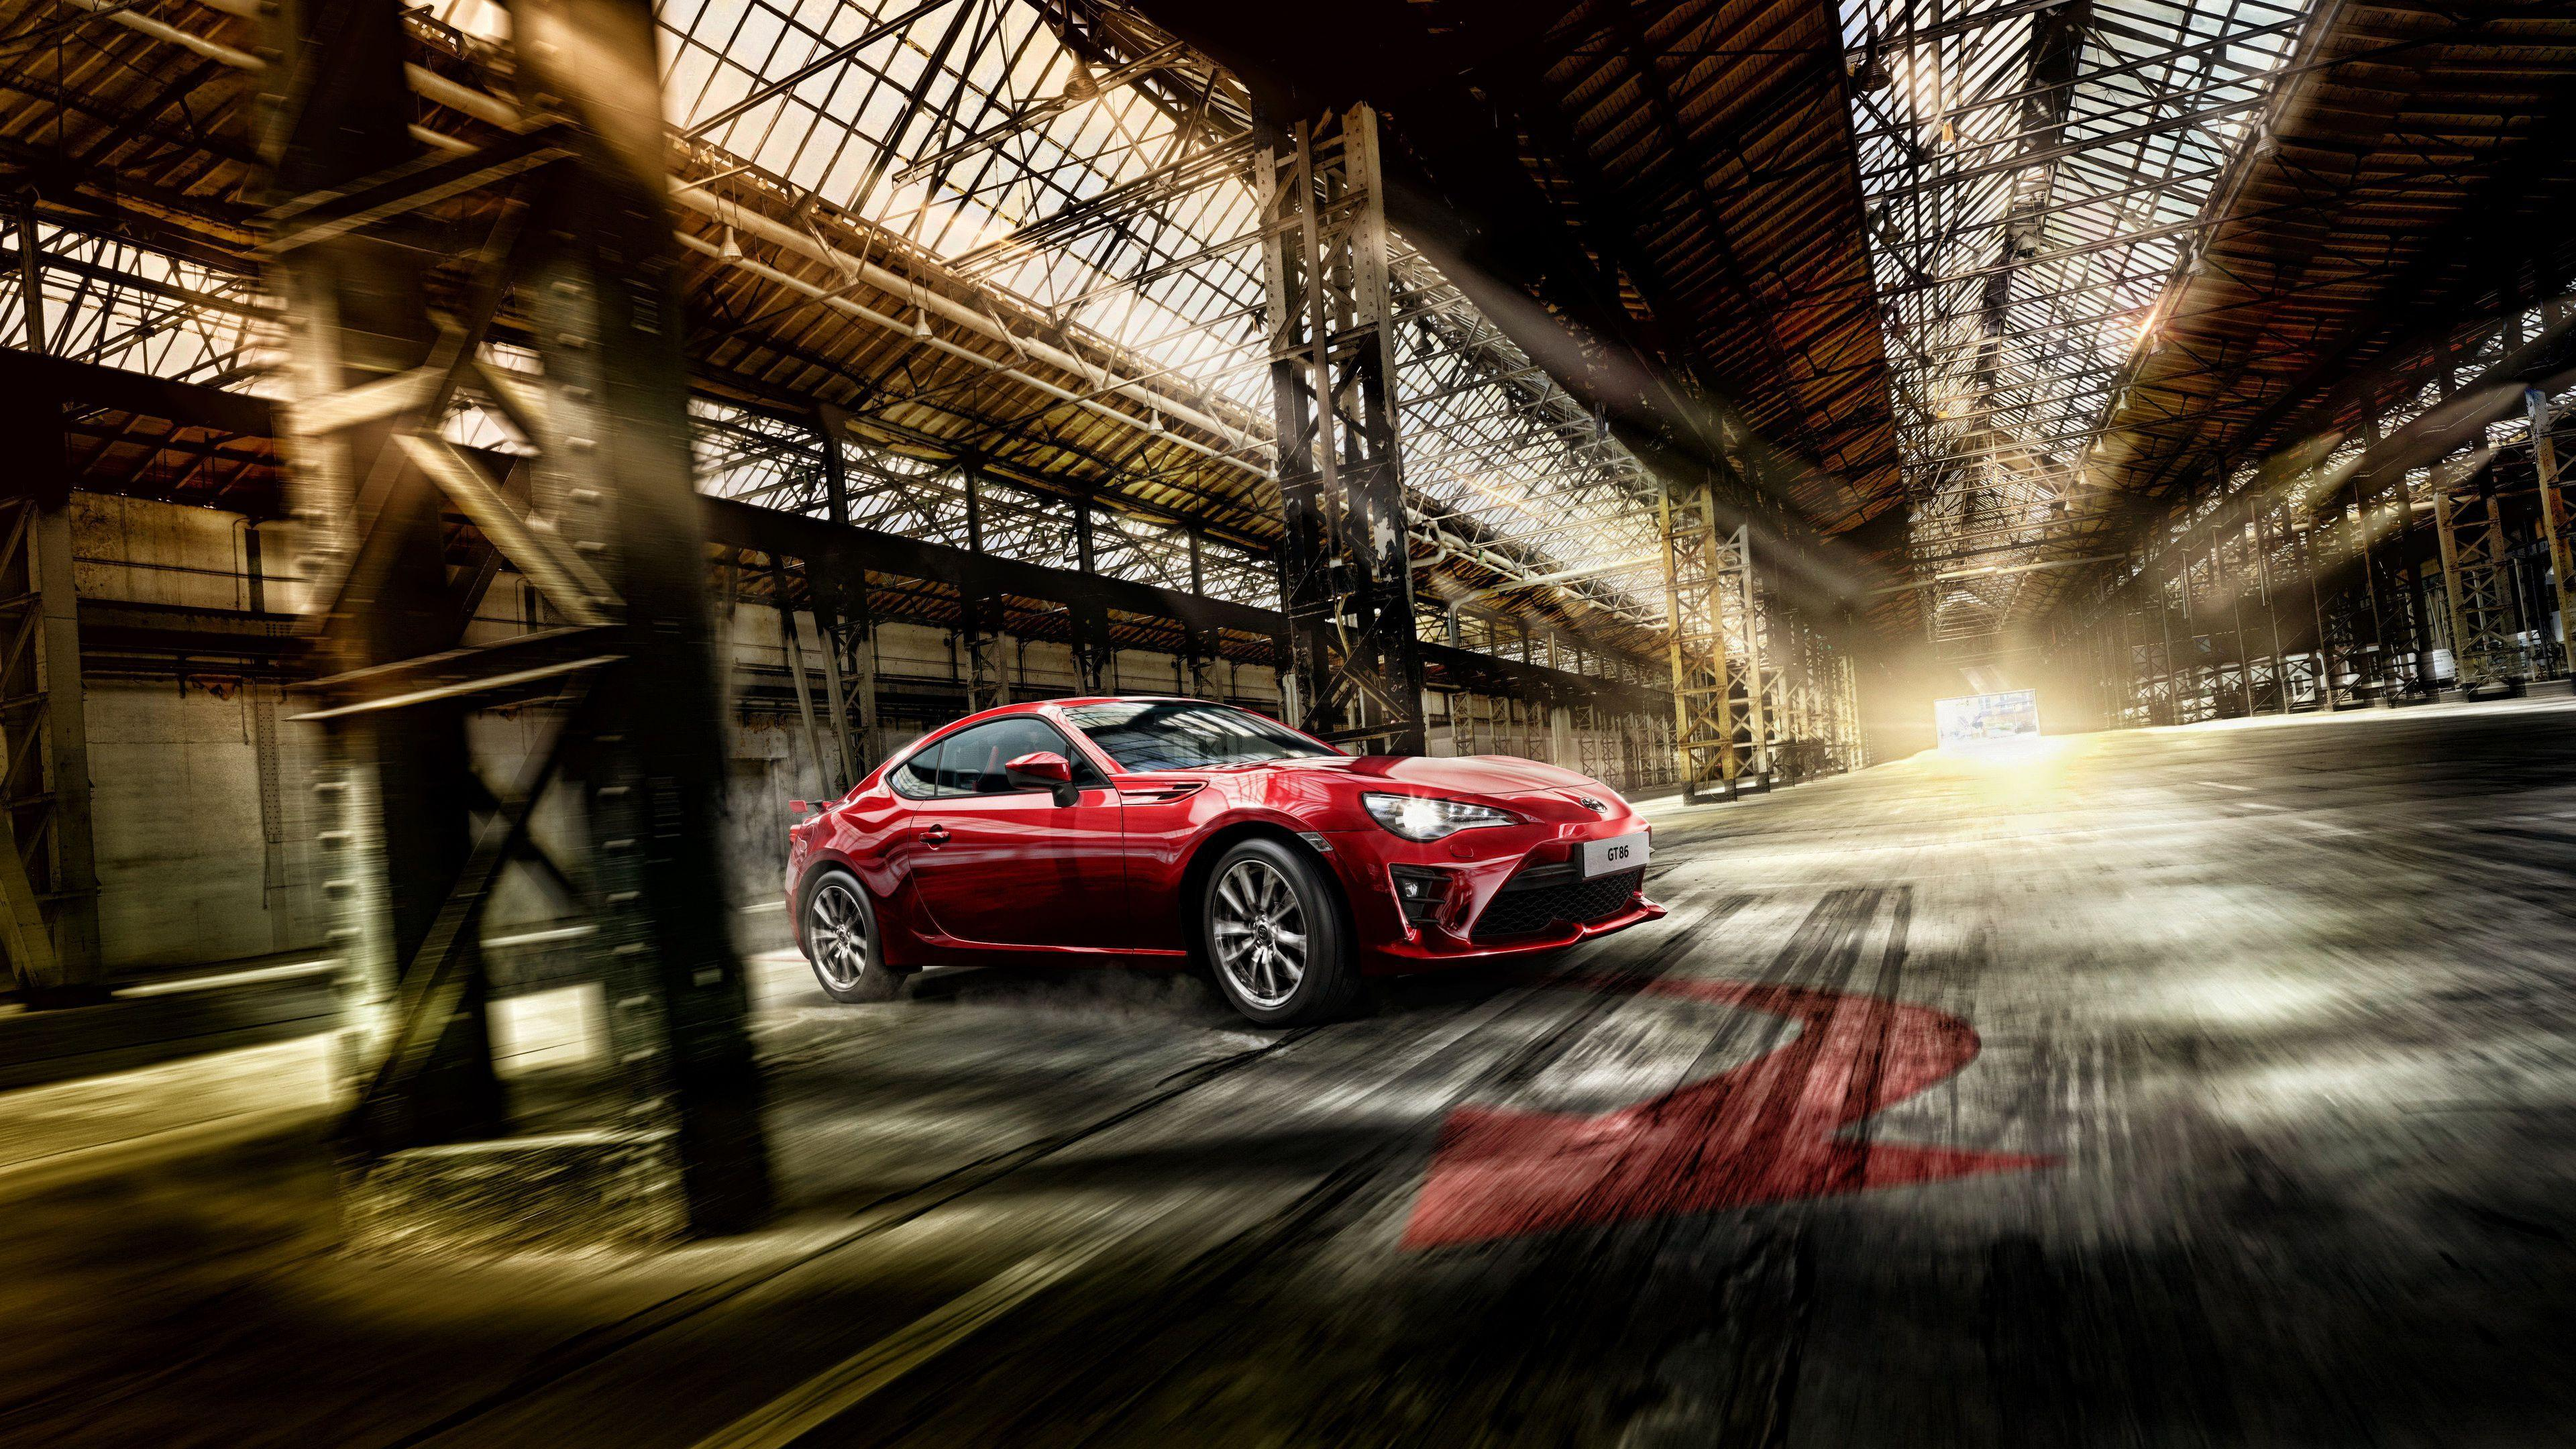 Toyota 86 Sports Car 2017 4K Wallpapers